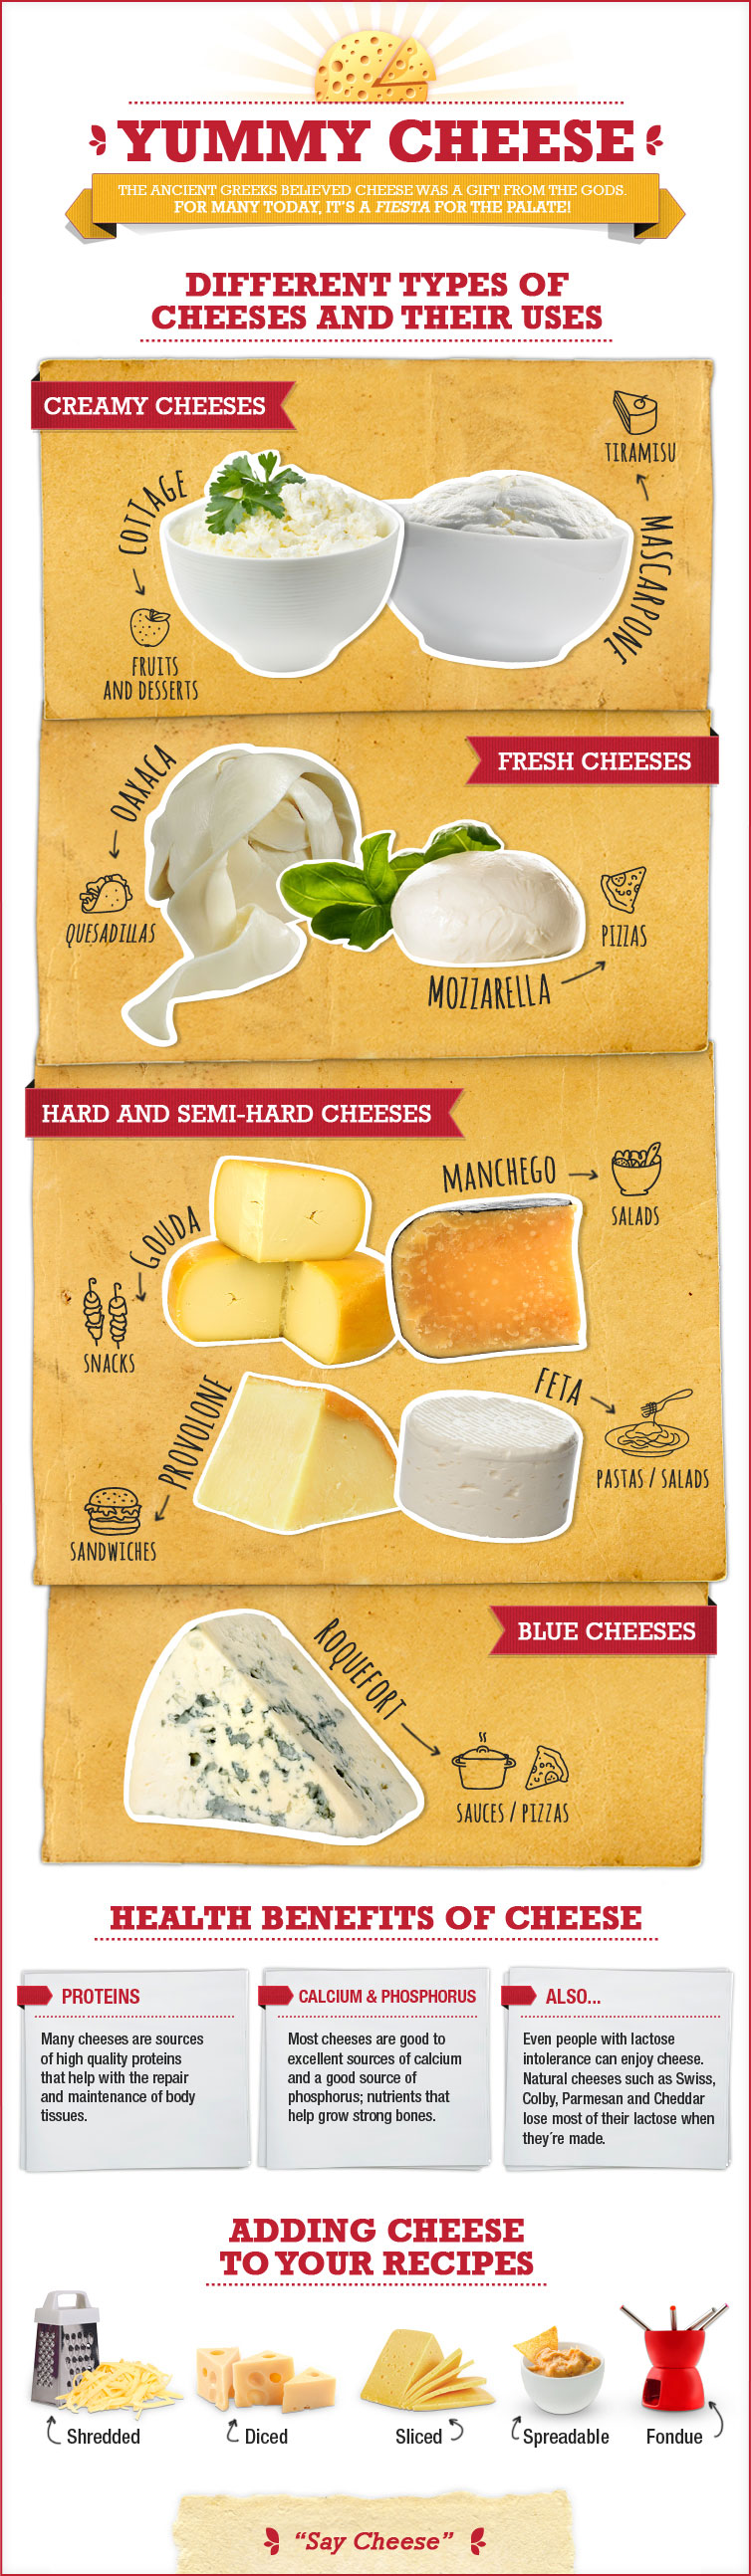 A Cheese Course: The Basic Types and Uses of Cheese